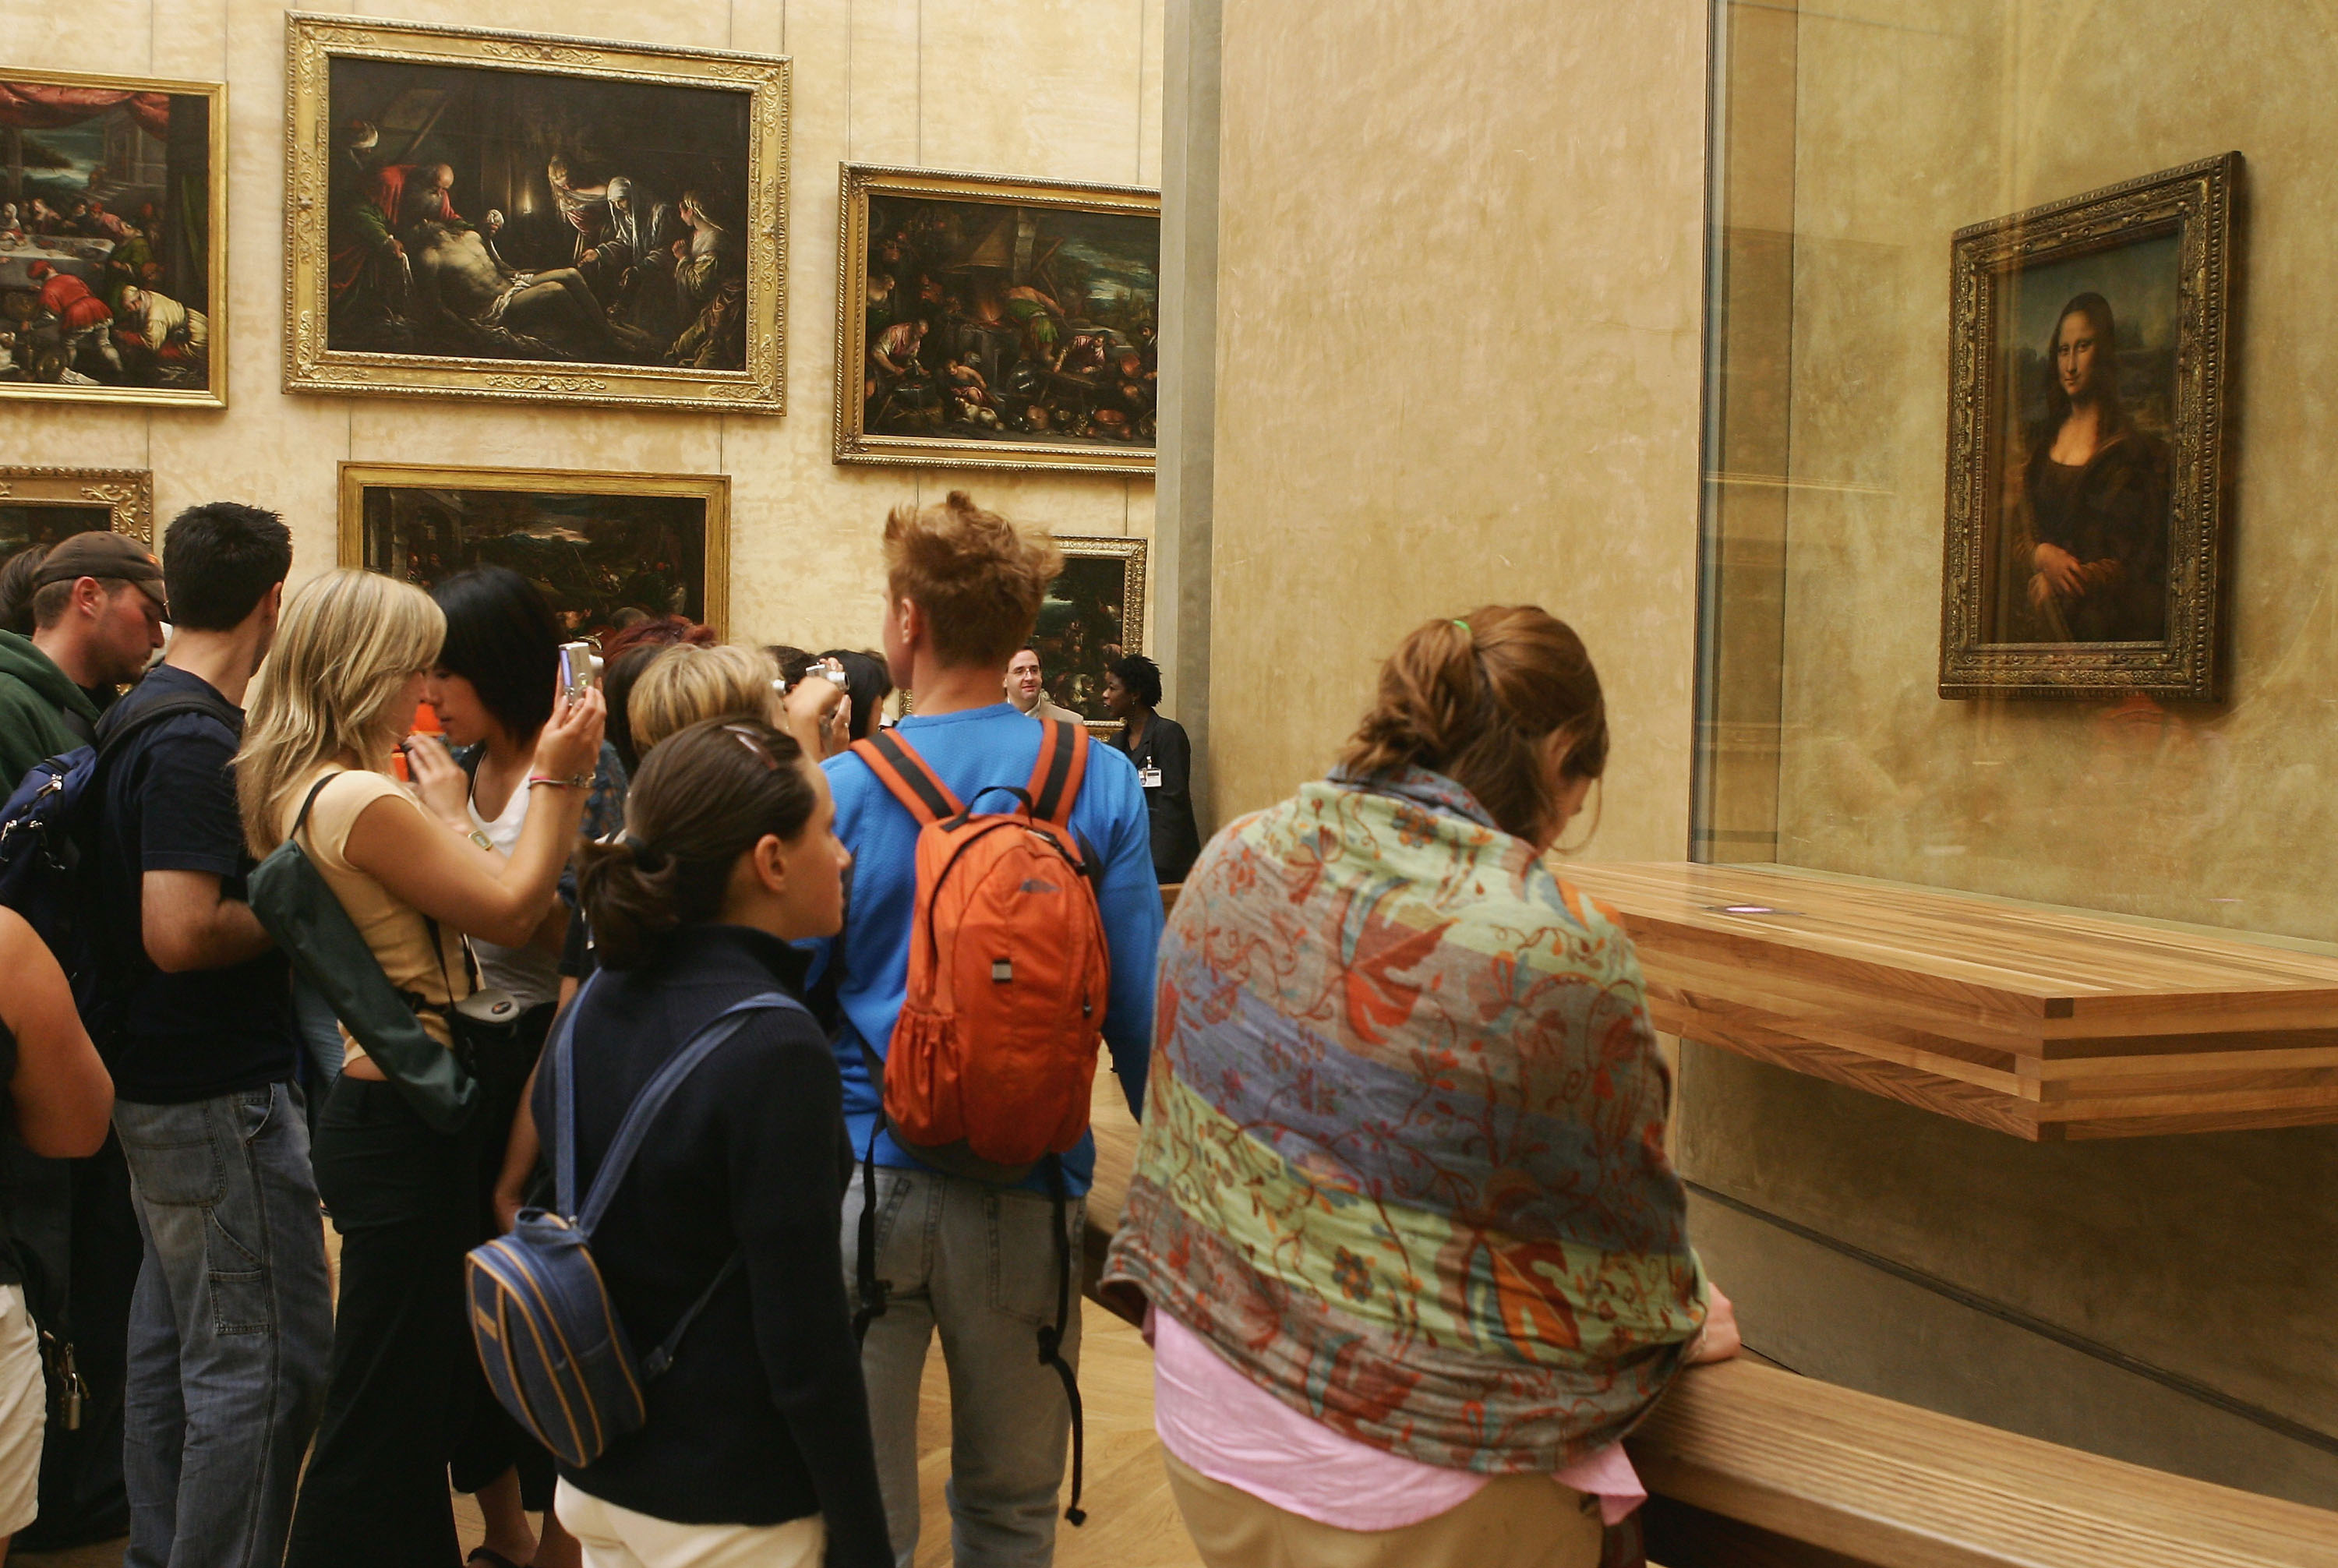 """Tourists admire the famous Leonardo Da Vinci painting """" The Mona Lisa"""" in the Grande Galerie of the Louvre museum on August 24, 2005 in Paris, France. (Photo by Pascal Le Segretain/Getty Images)"""